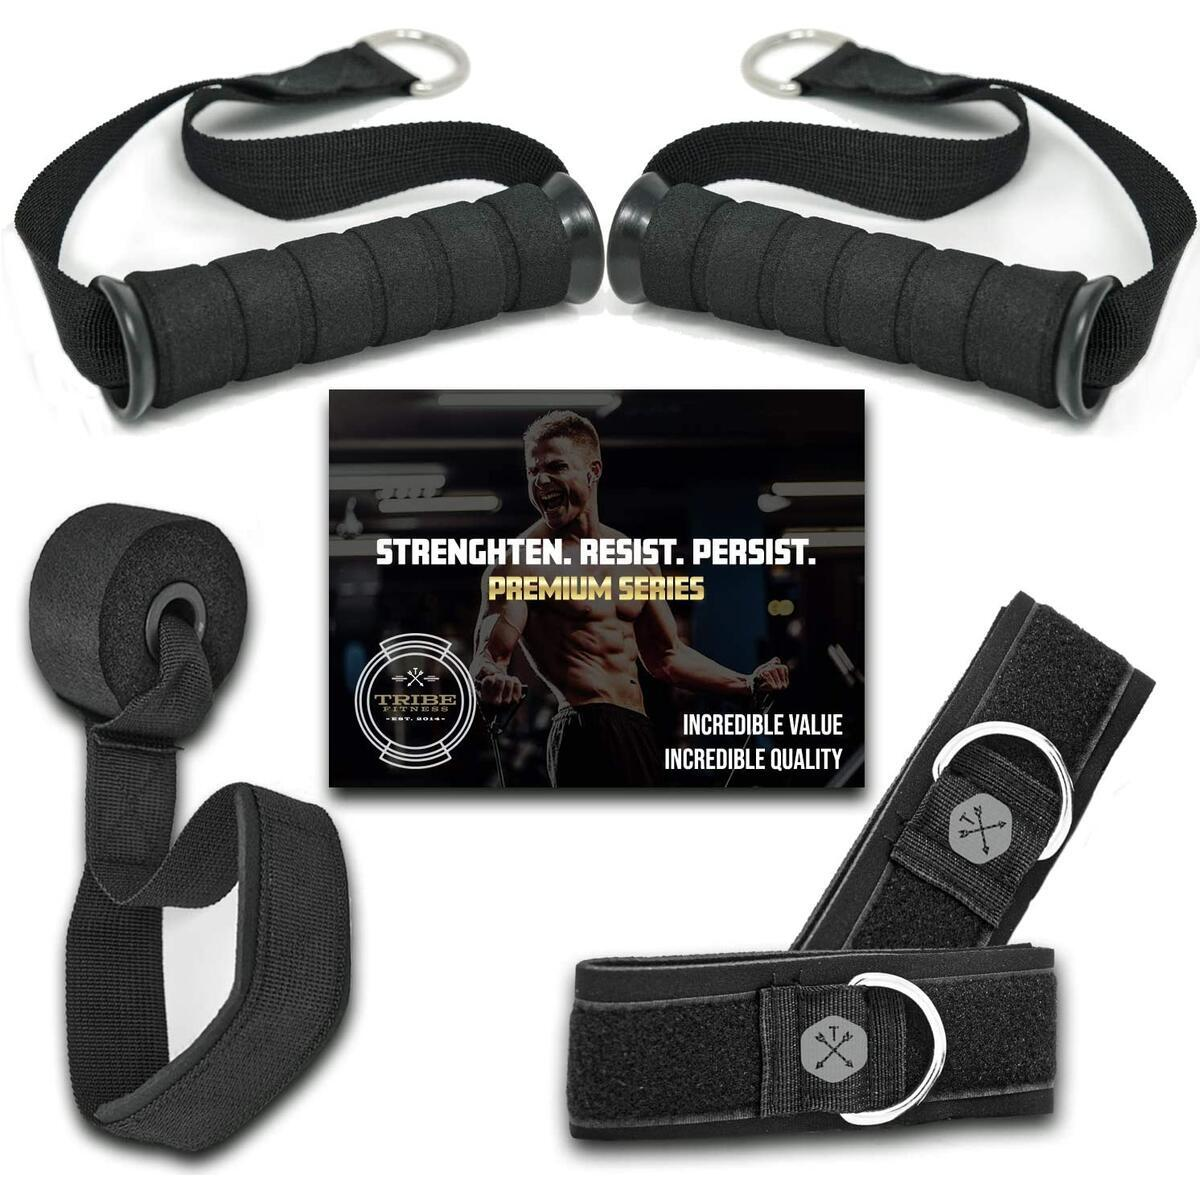 Tribe Resistance Bands Accessories Equipment System for Home Gym, Exercise, Workout, Tube Bands & Cable Machines. Ankle Straps, Door Anchor, Handles & Clips. Heavy Duty Handle & Strap Attachments